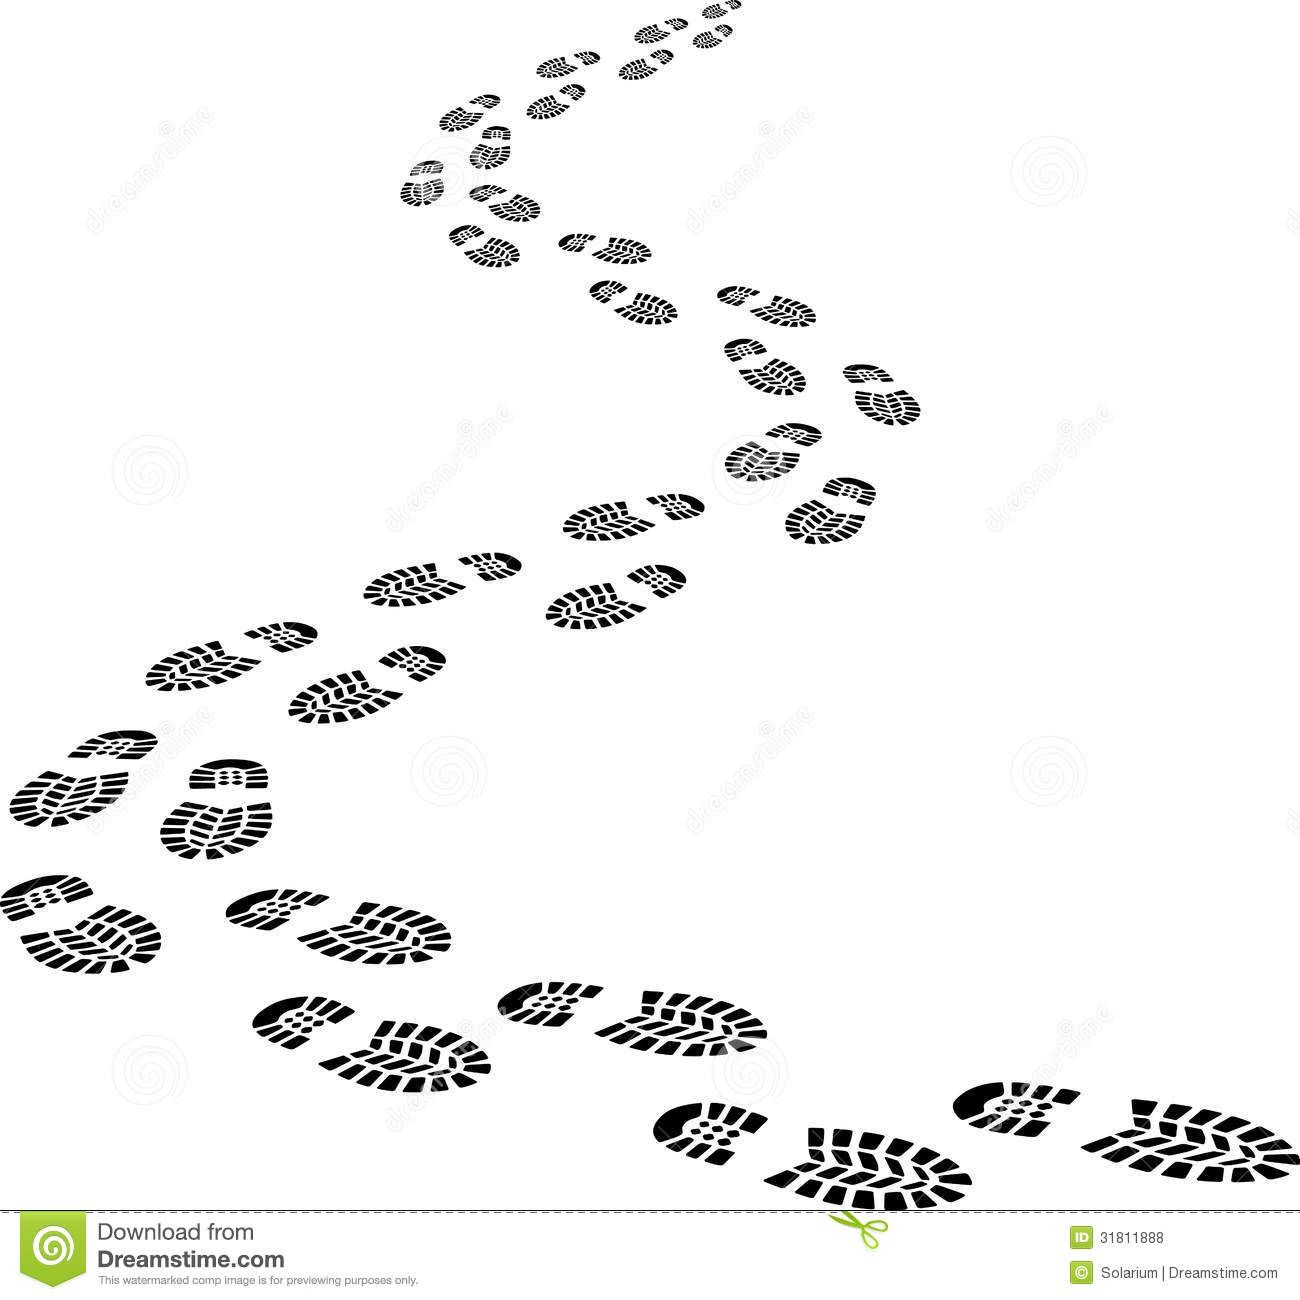 Footprints (or ) are the impressions or images left behind by a.